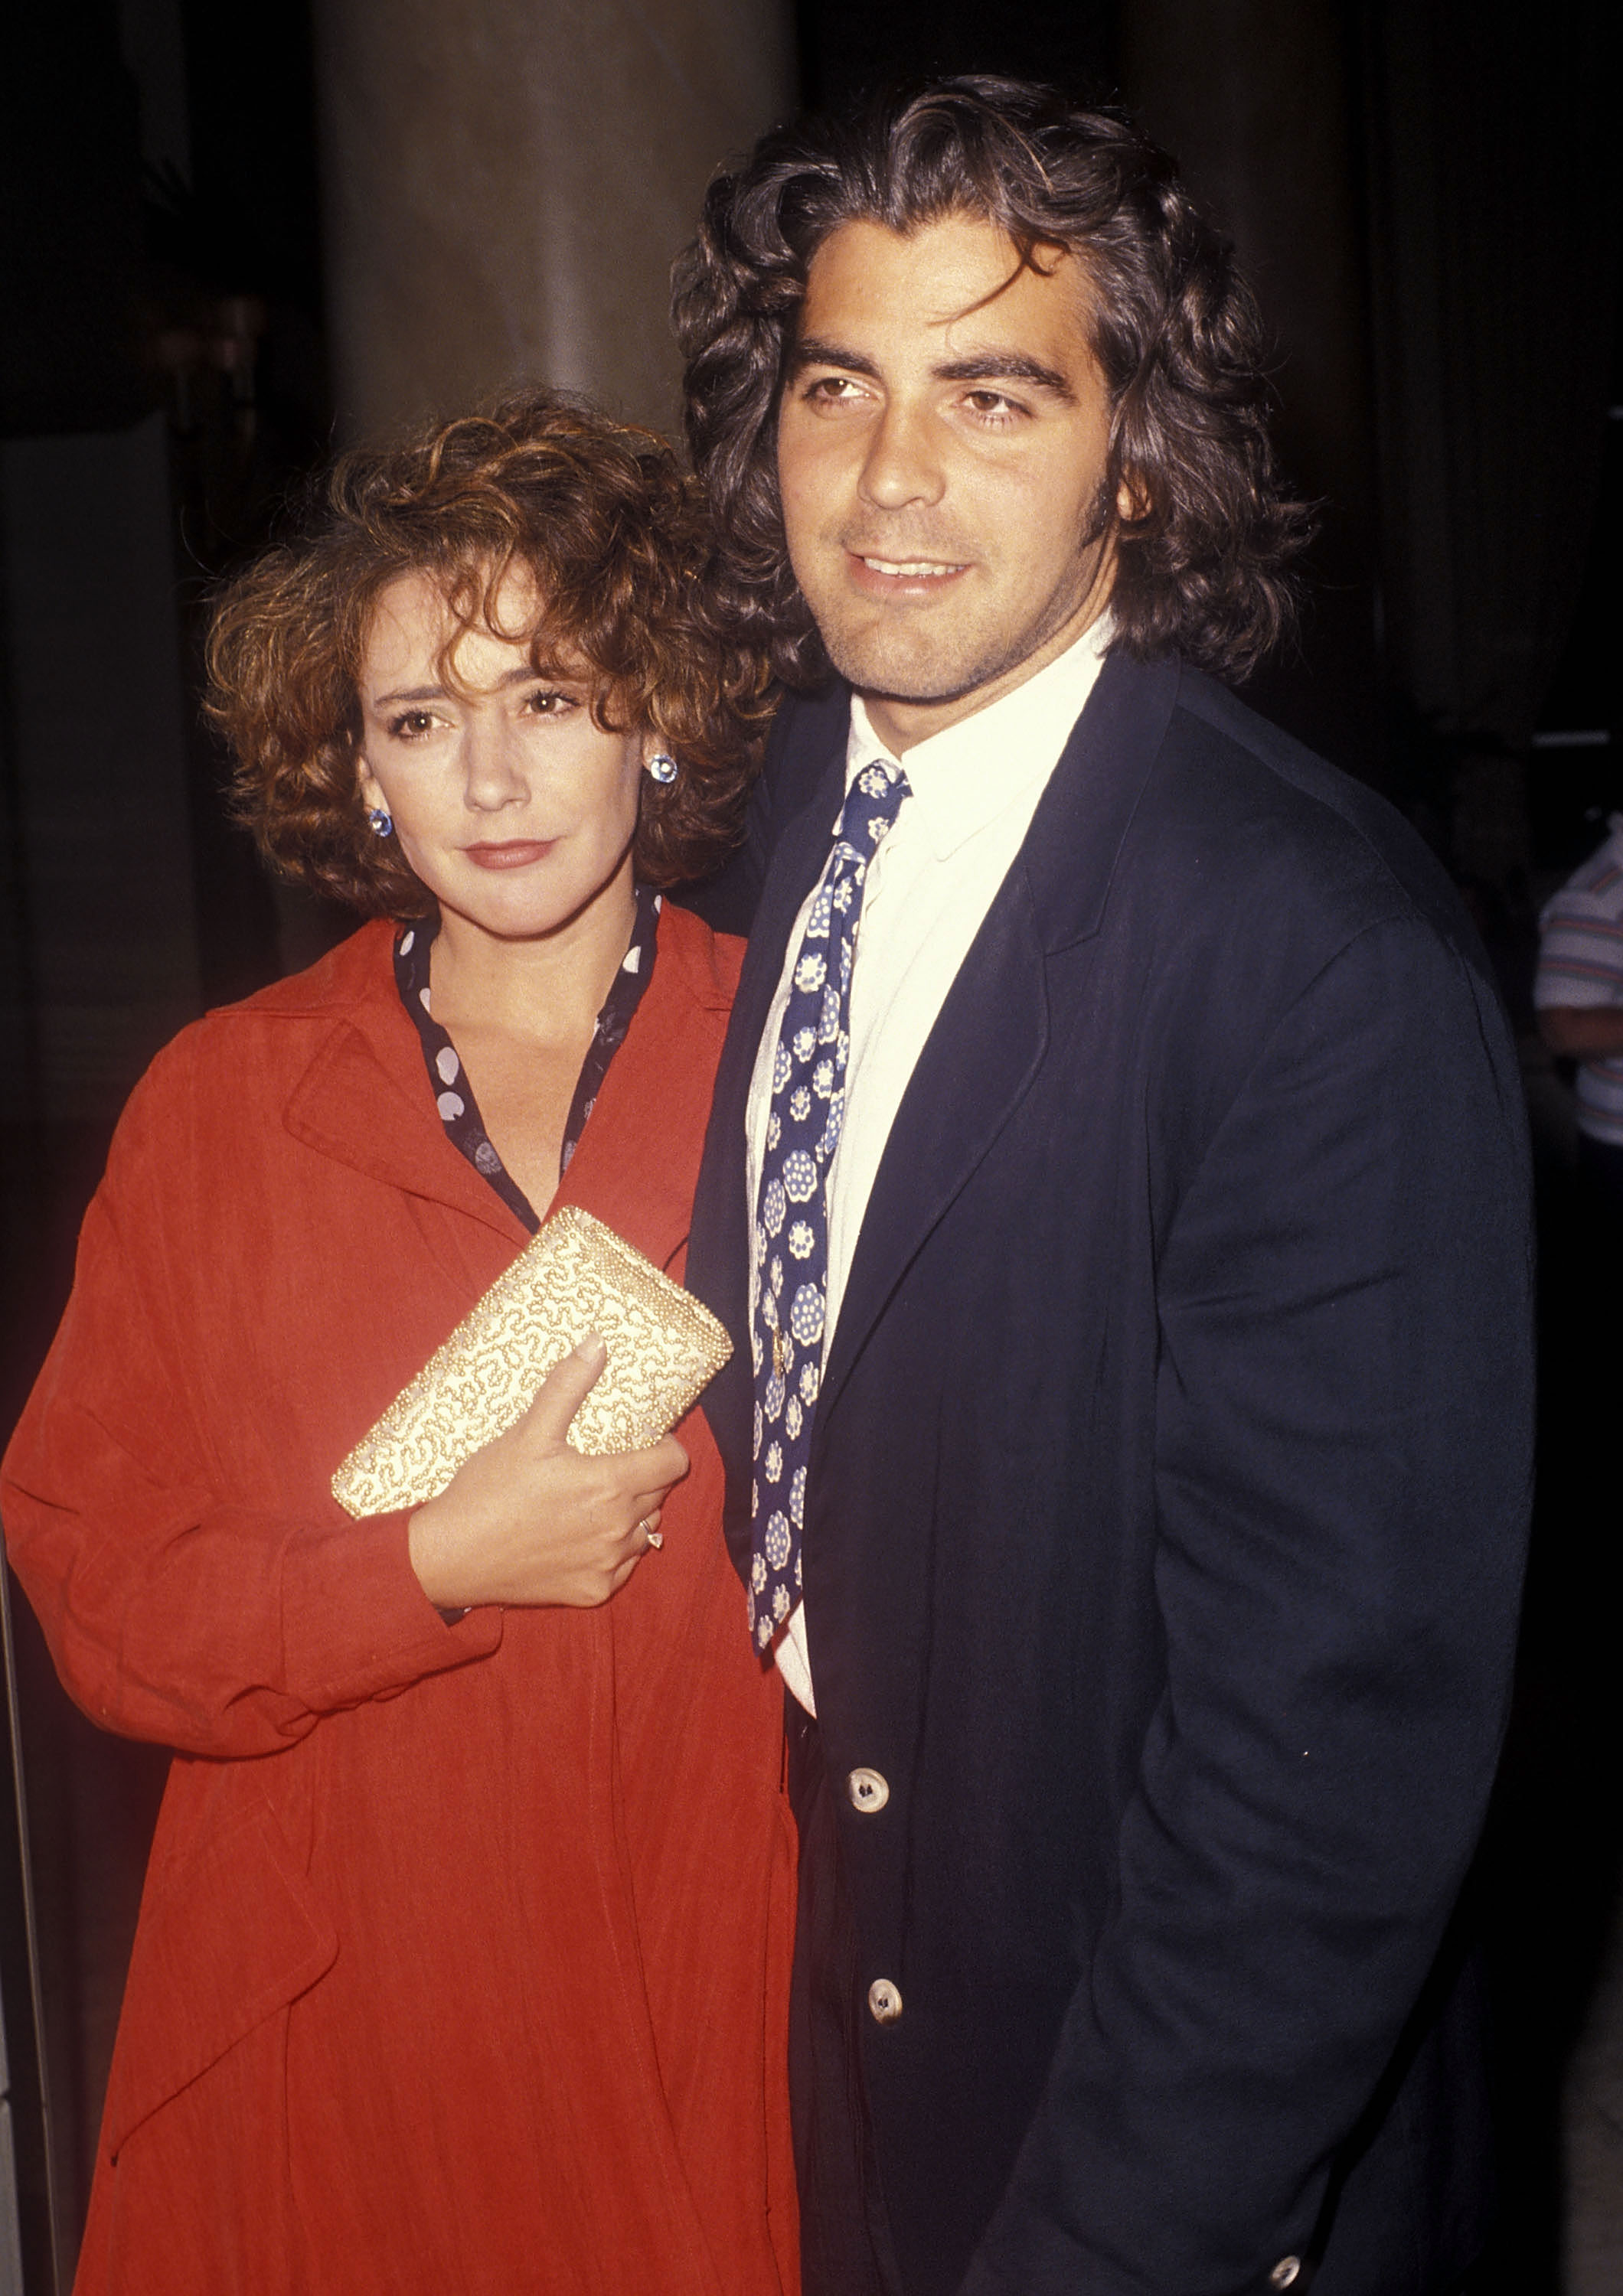 Remember When George Clooney Was Married to Talia Balsam?